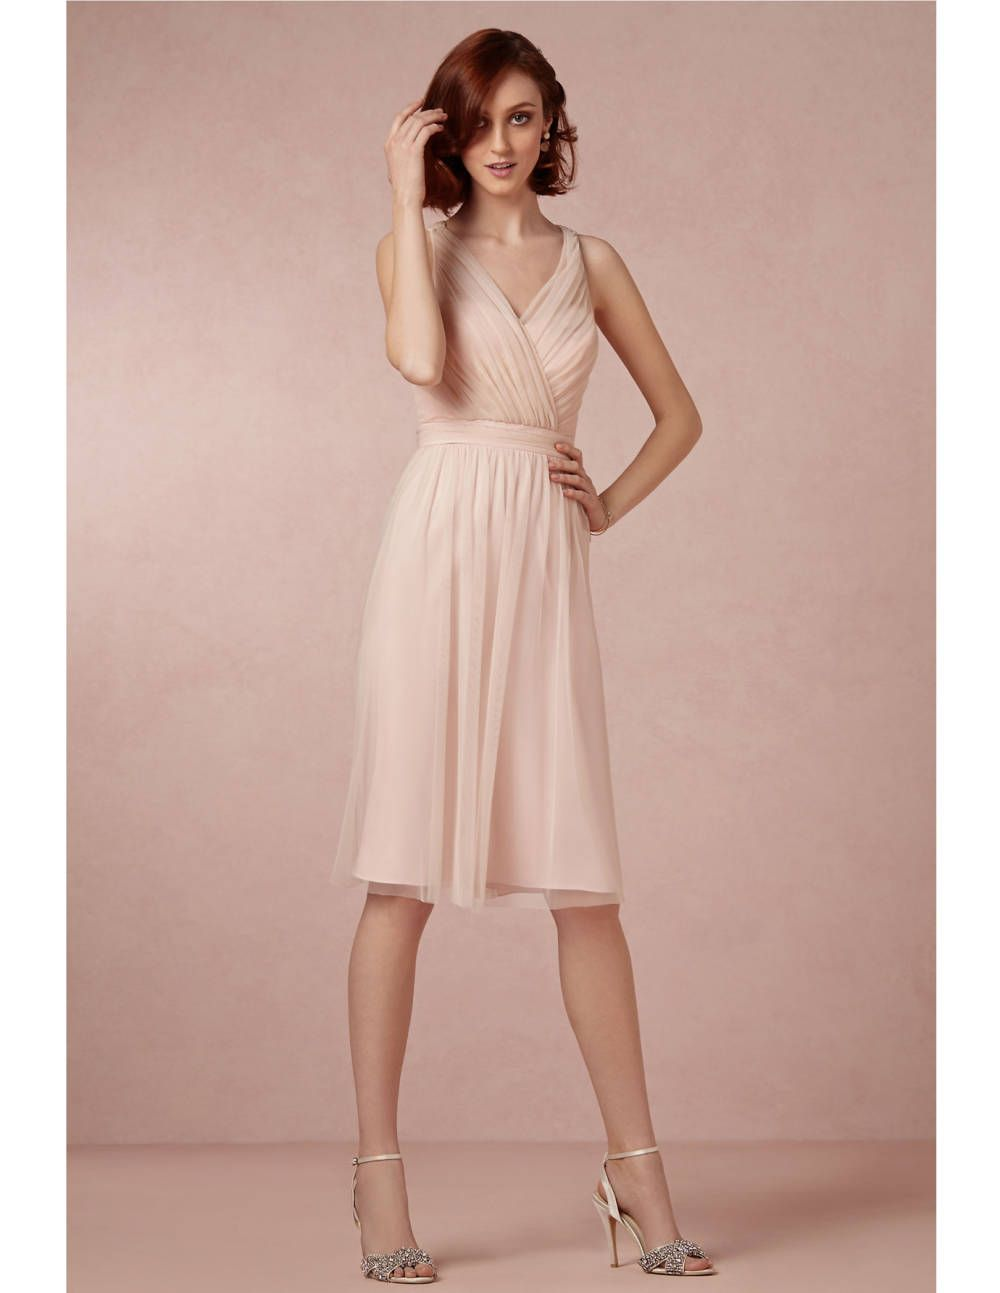 The best neutral colored bridesmaid dresses pale pink best neutral colored bridesmaid dresses best pale pink bridesmaid dresses town country ombrellifo Images